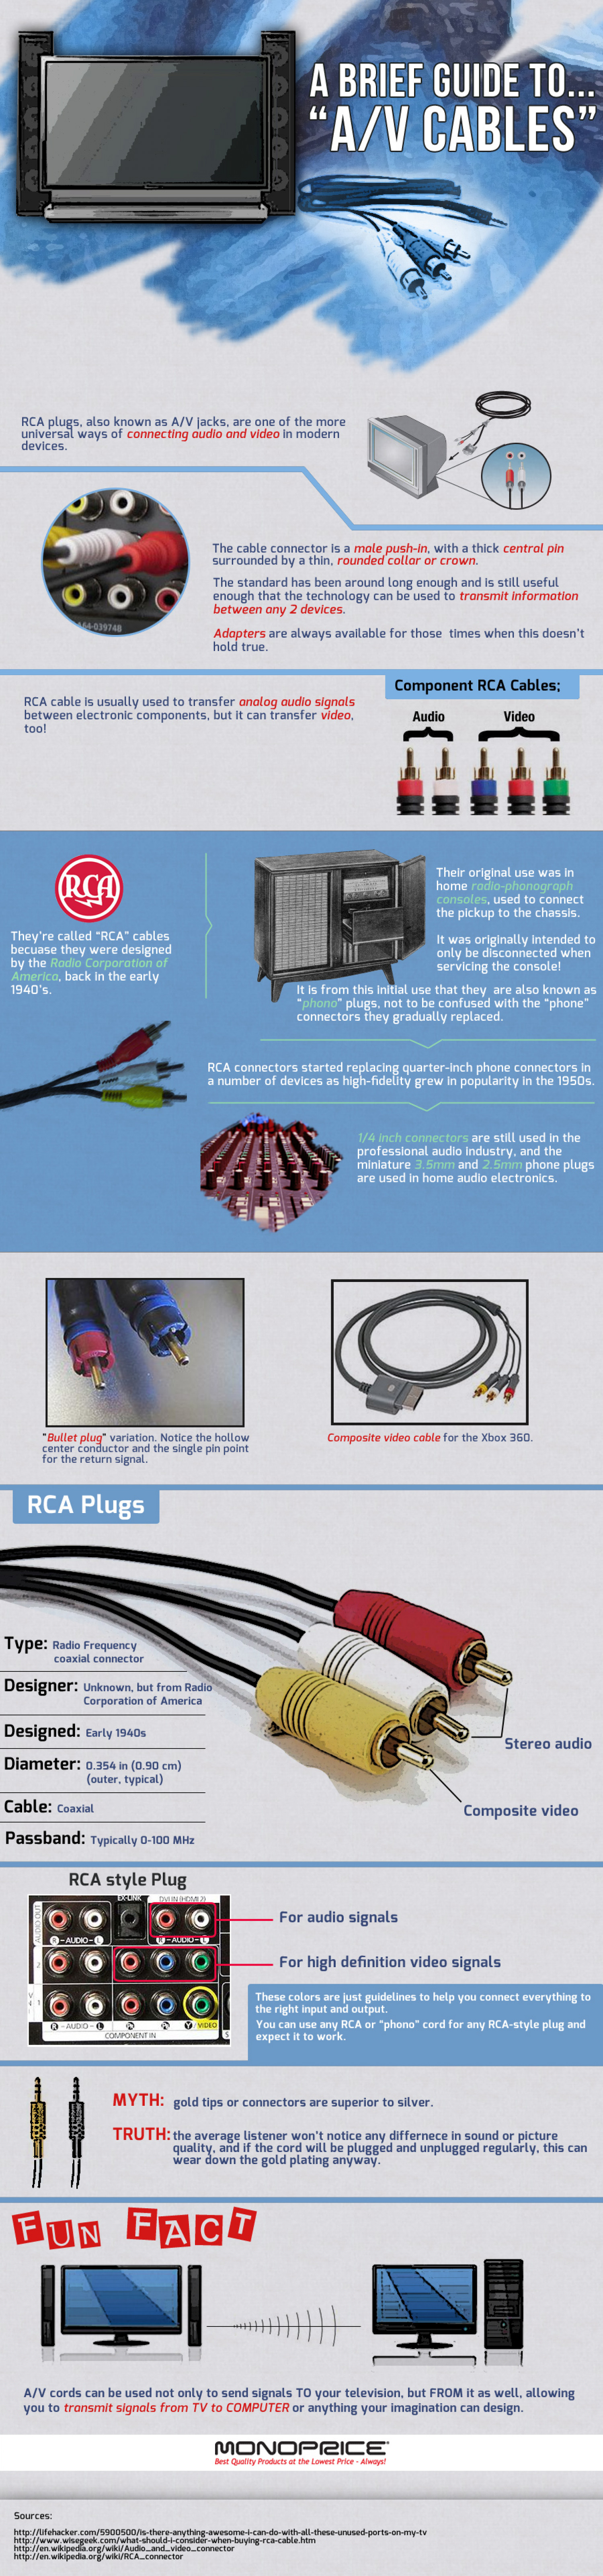 "A BRIEF GUIDE TO… ""A/V CABLES"" Infographic"